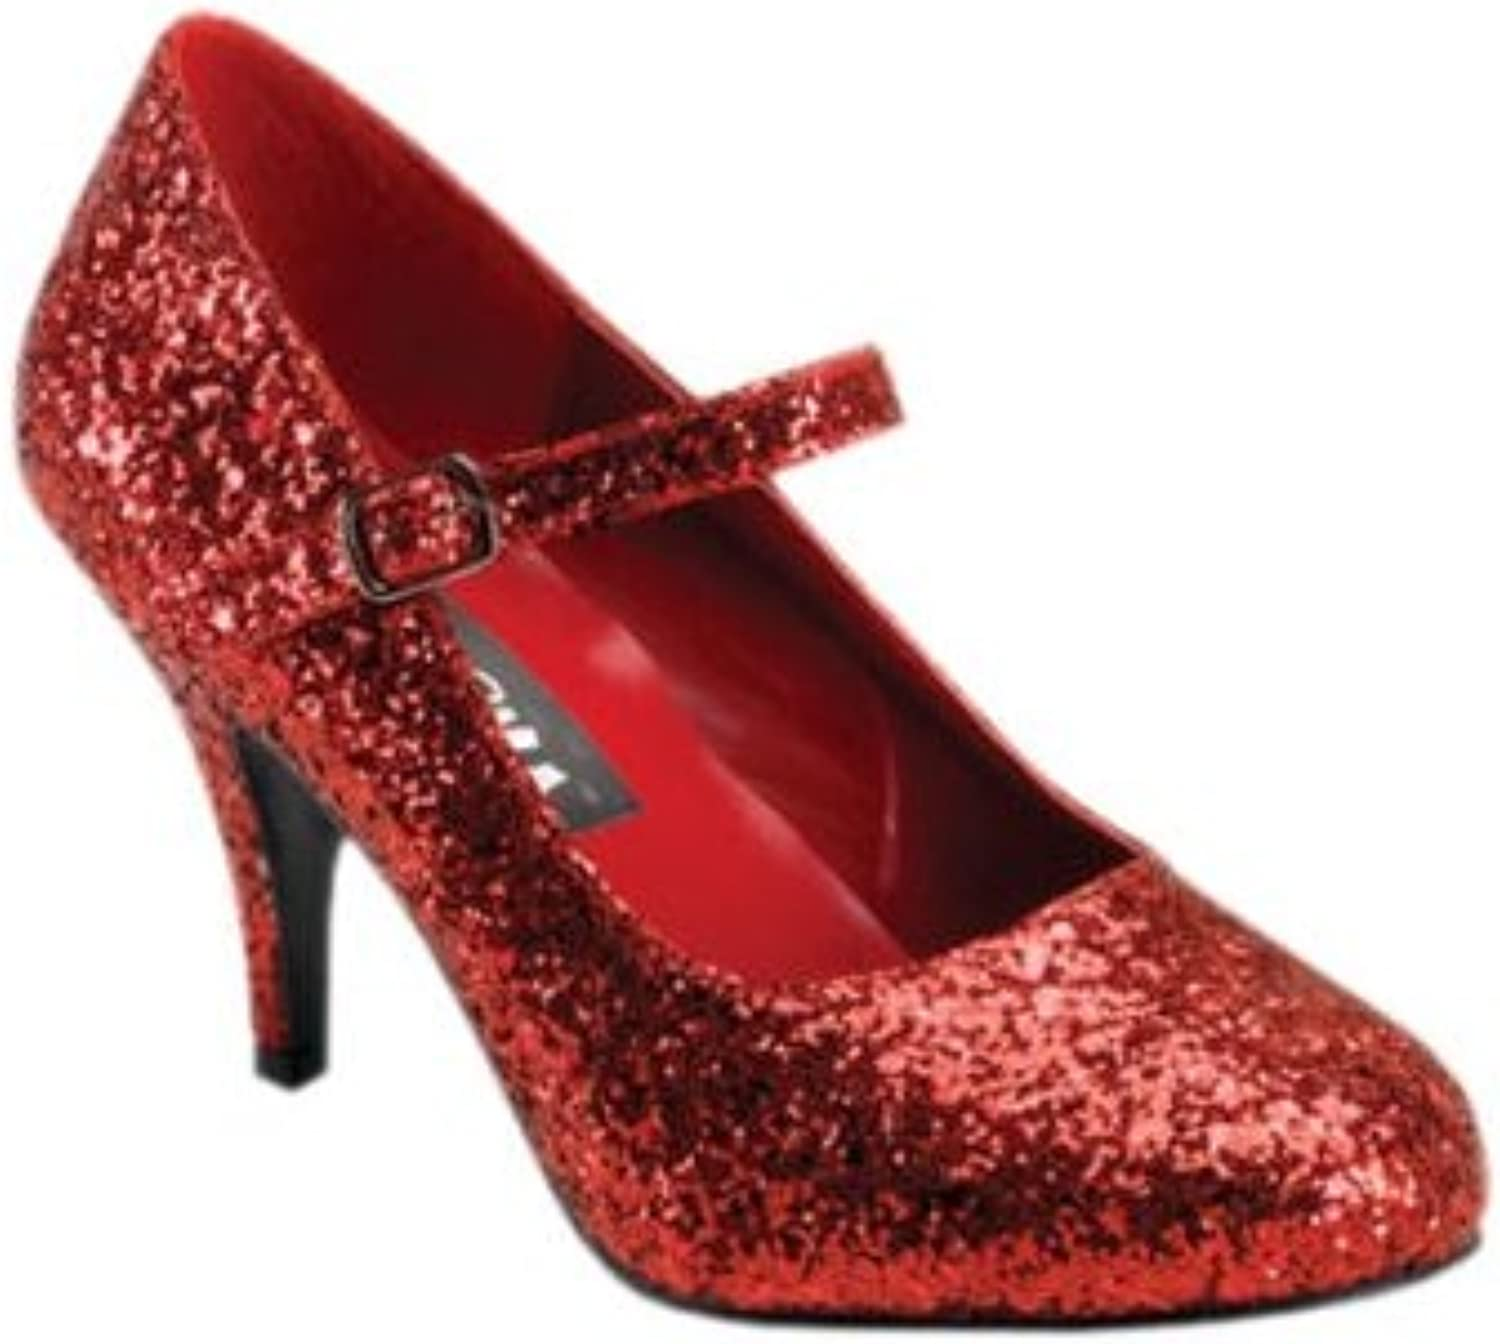 Pleaser GLINDA-50G, Red Glittre Mary Jane shoes, 3